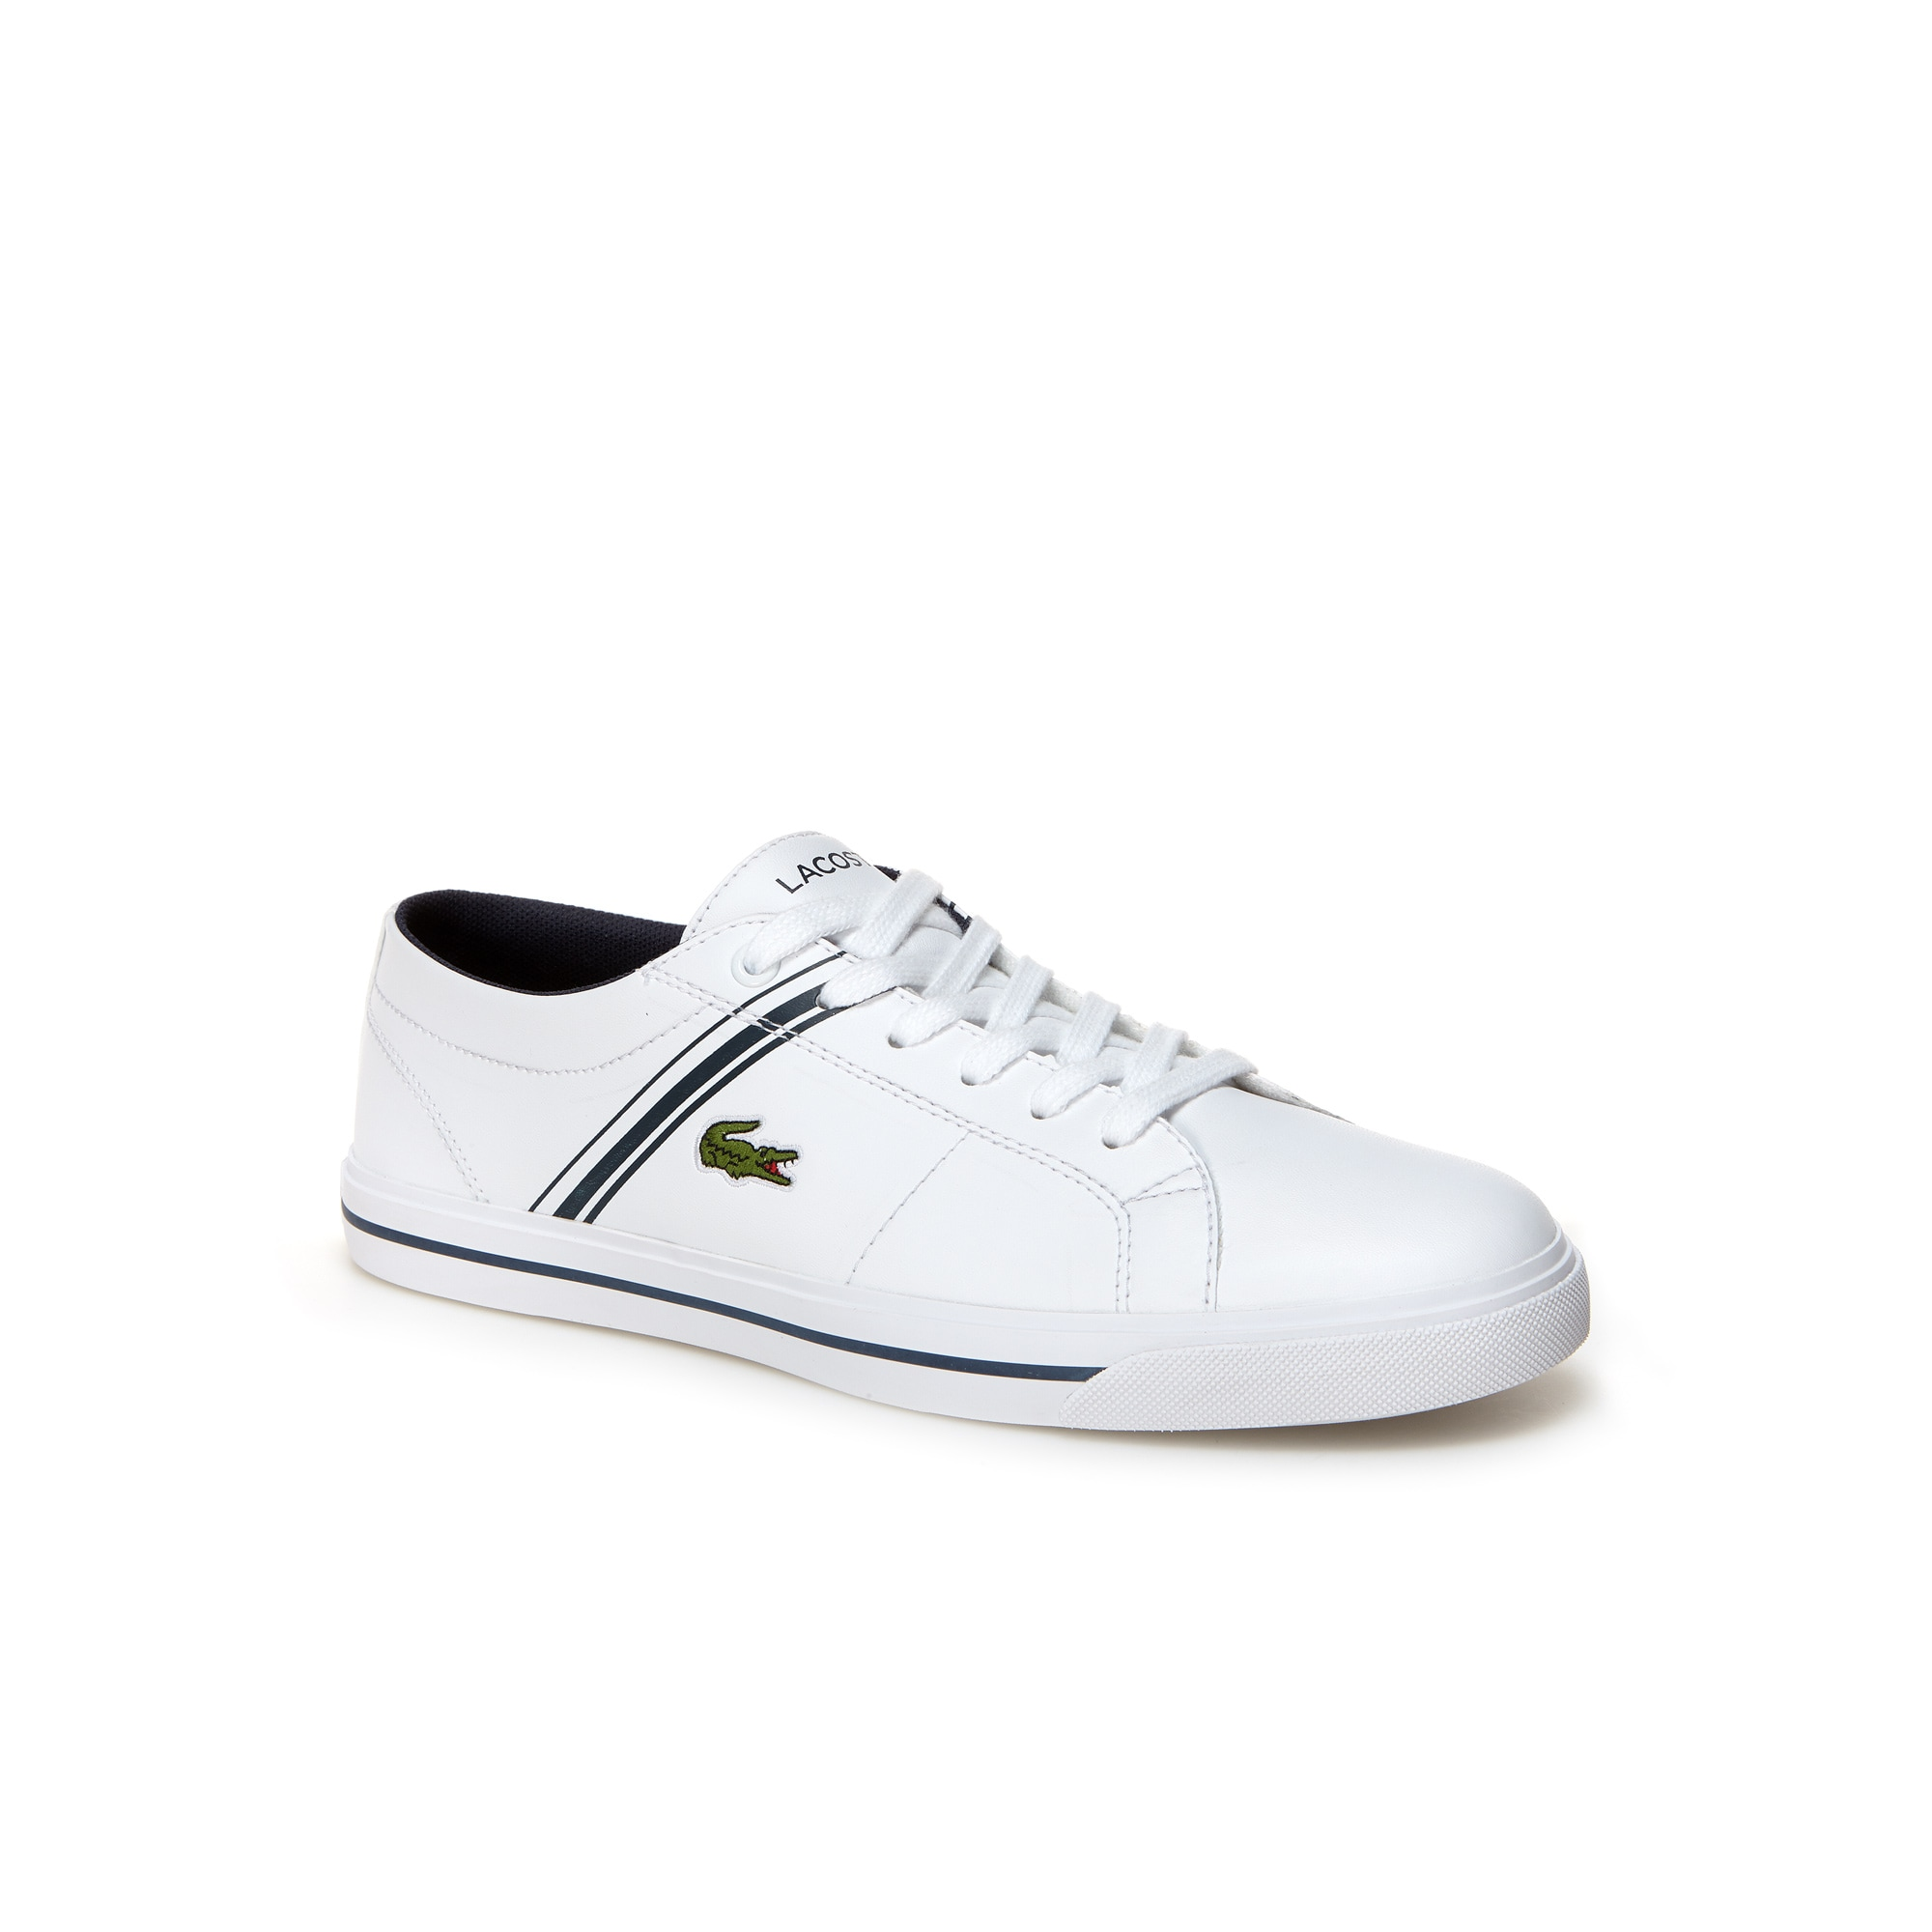 Youths' Riberac Leather-look Trainers